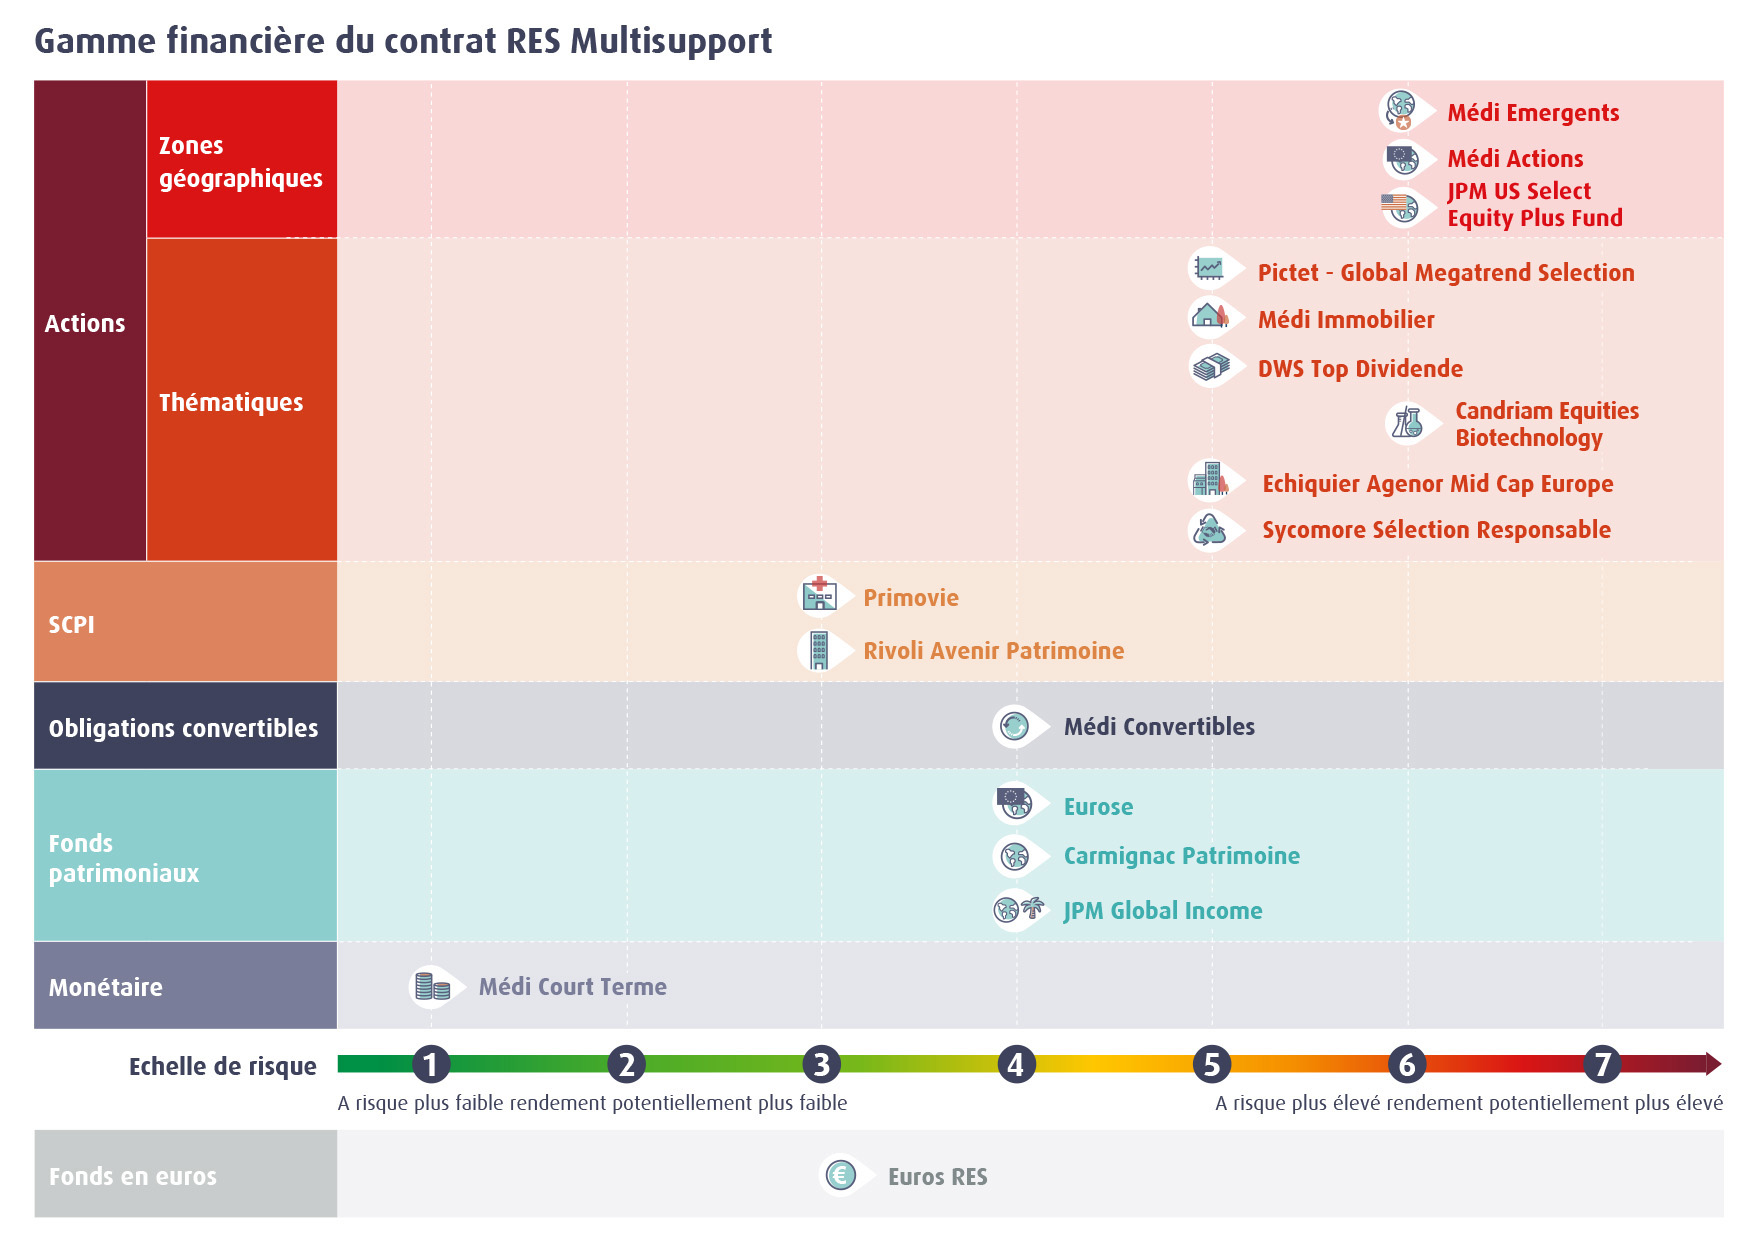 Infographie gamme financière RES Multisupport